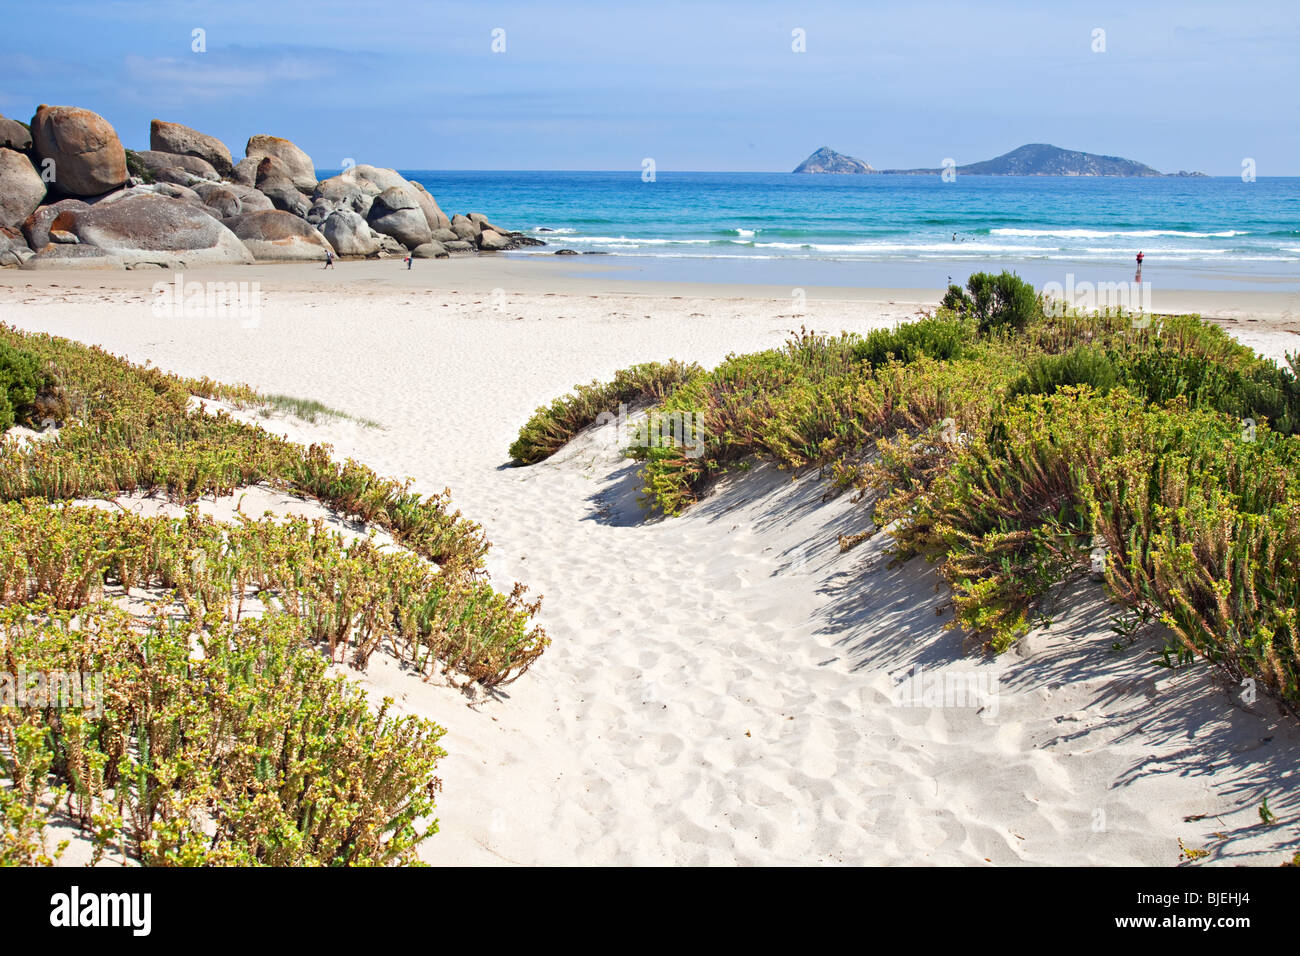 Whiskey Bay, Wilsons Promontory National Park, Victoria, Australie Banque D'Images